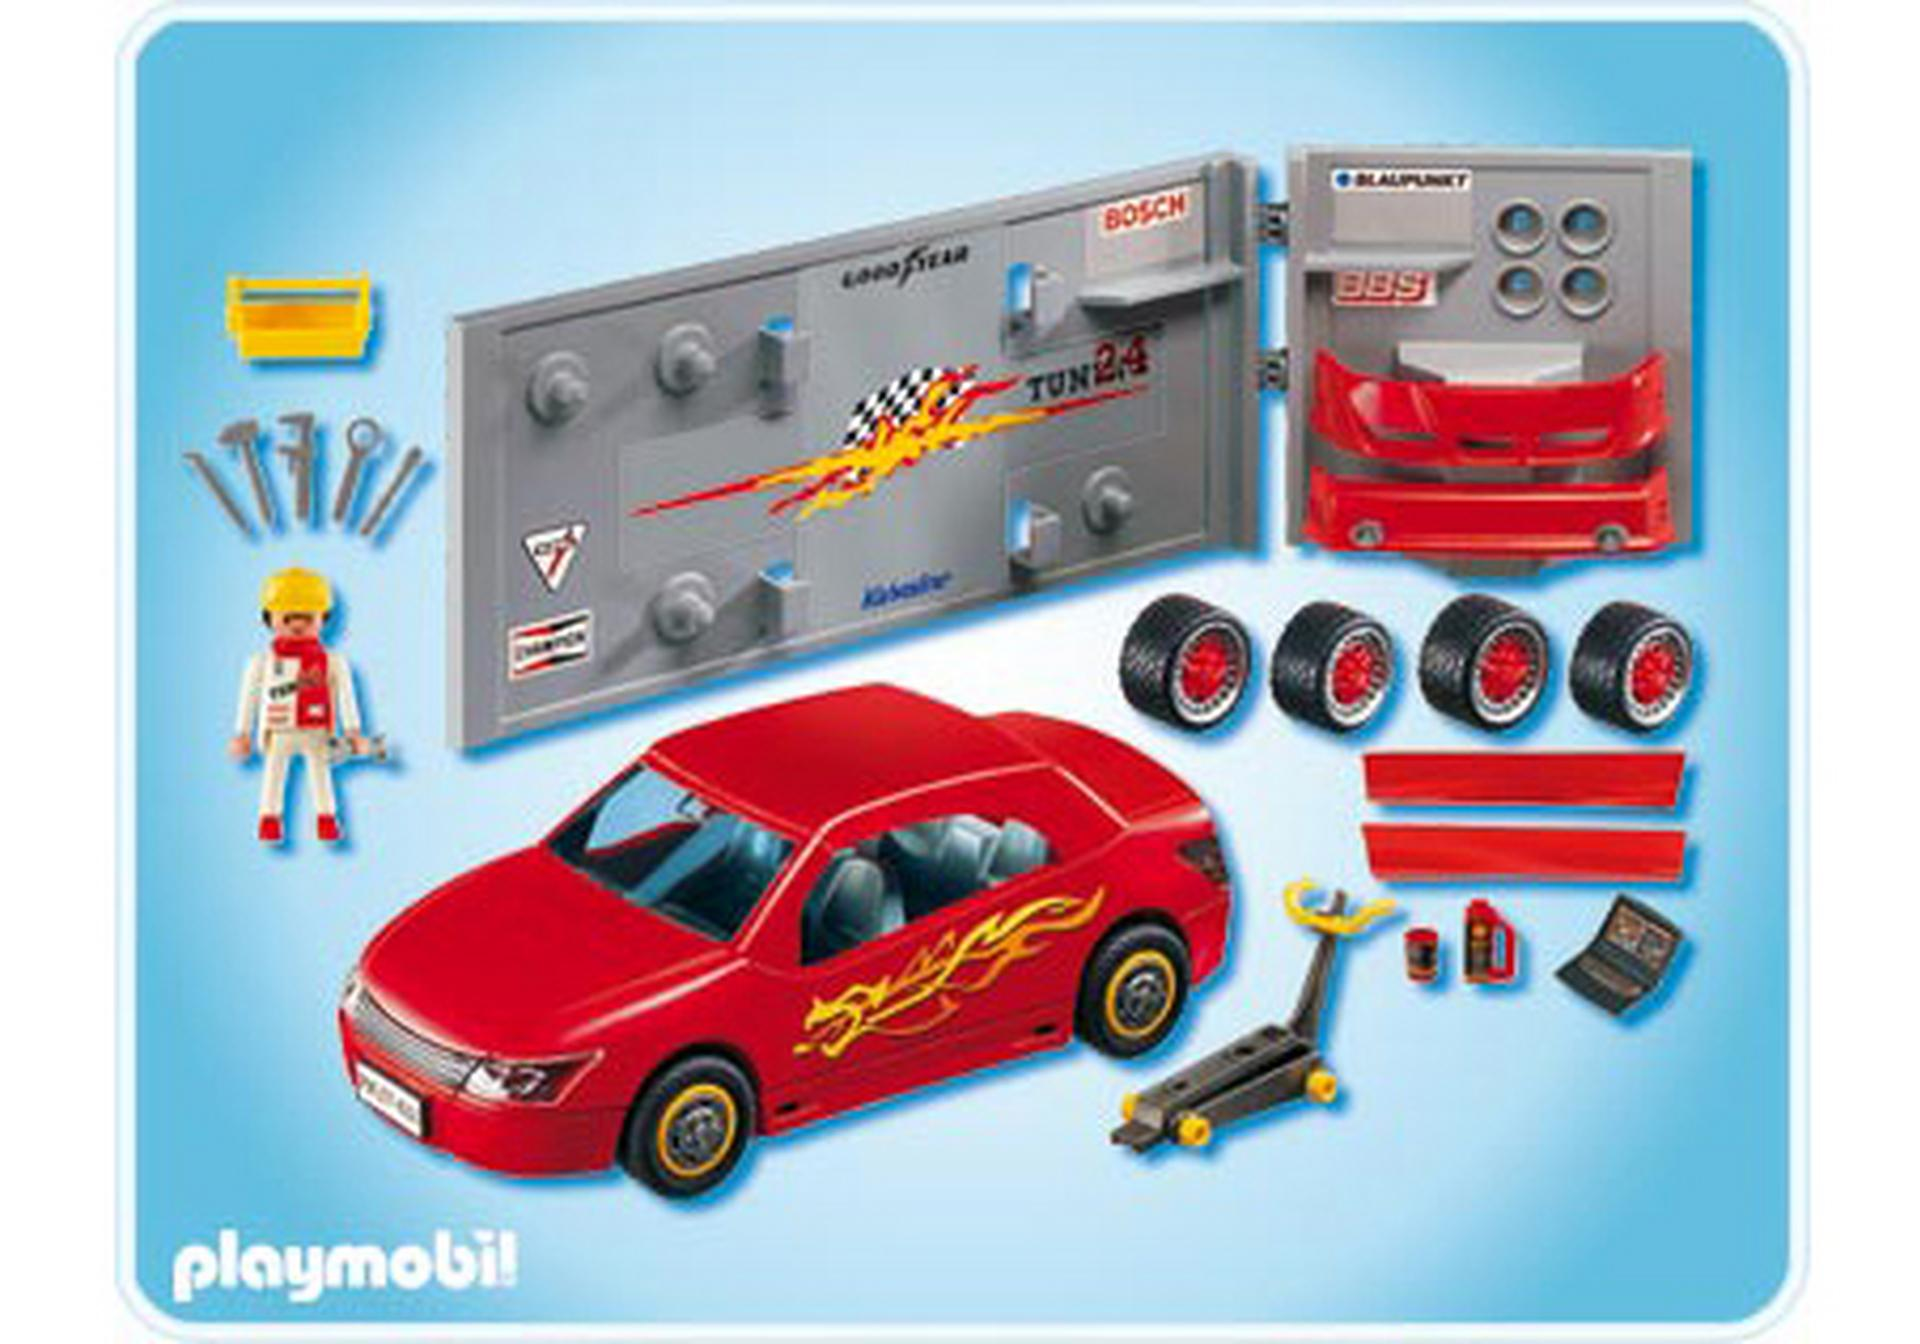 voiture avec atelier tuning 4321 a playmobil france. Black Bedroom Furniture Sets. Home Design Ideas